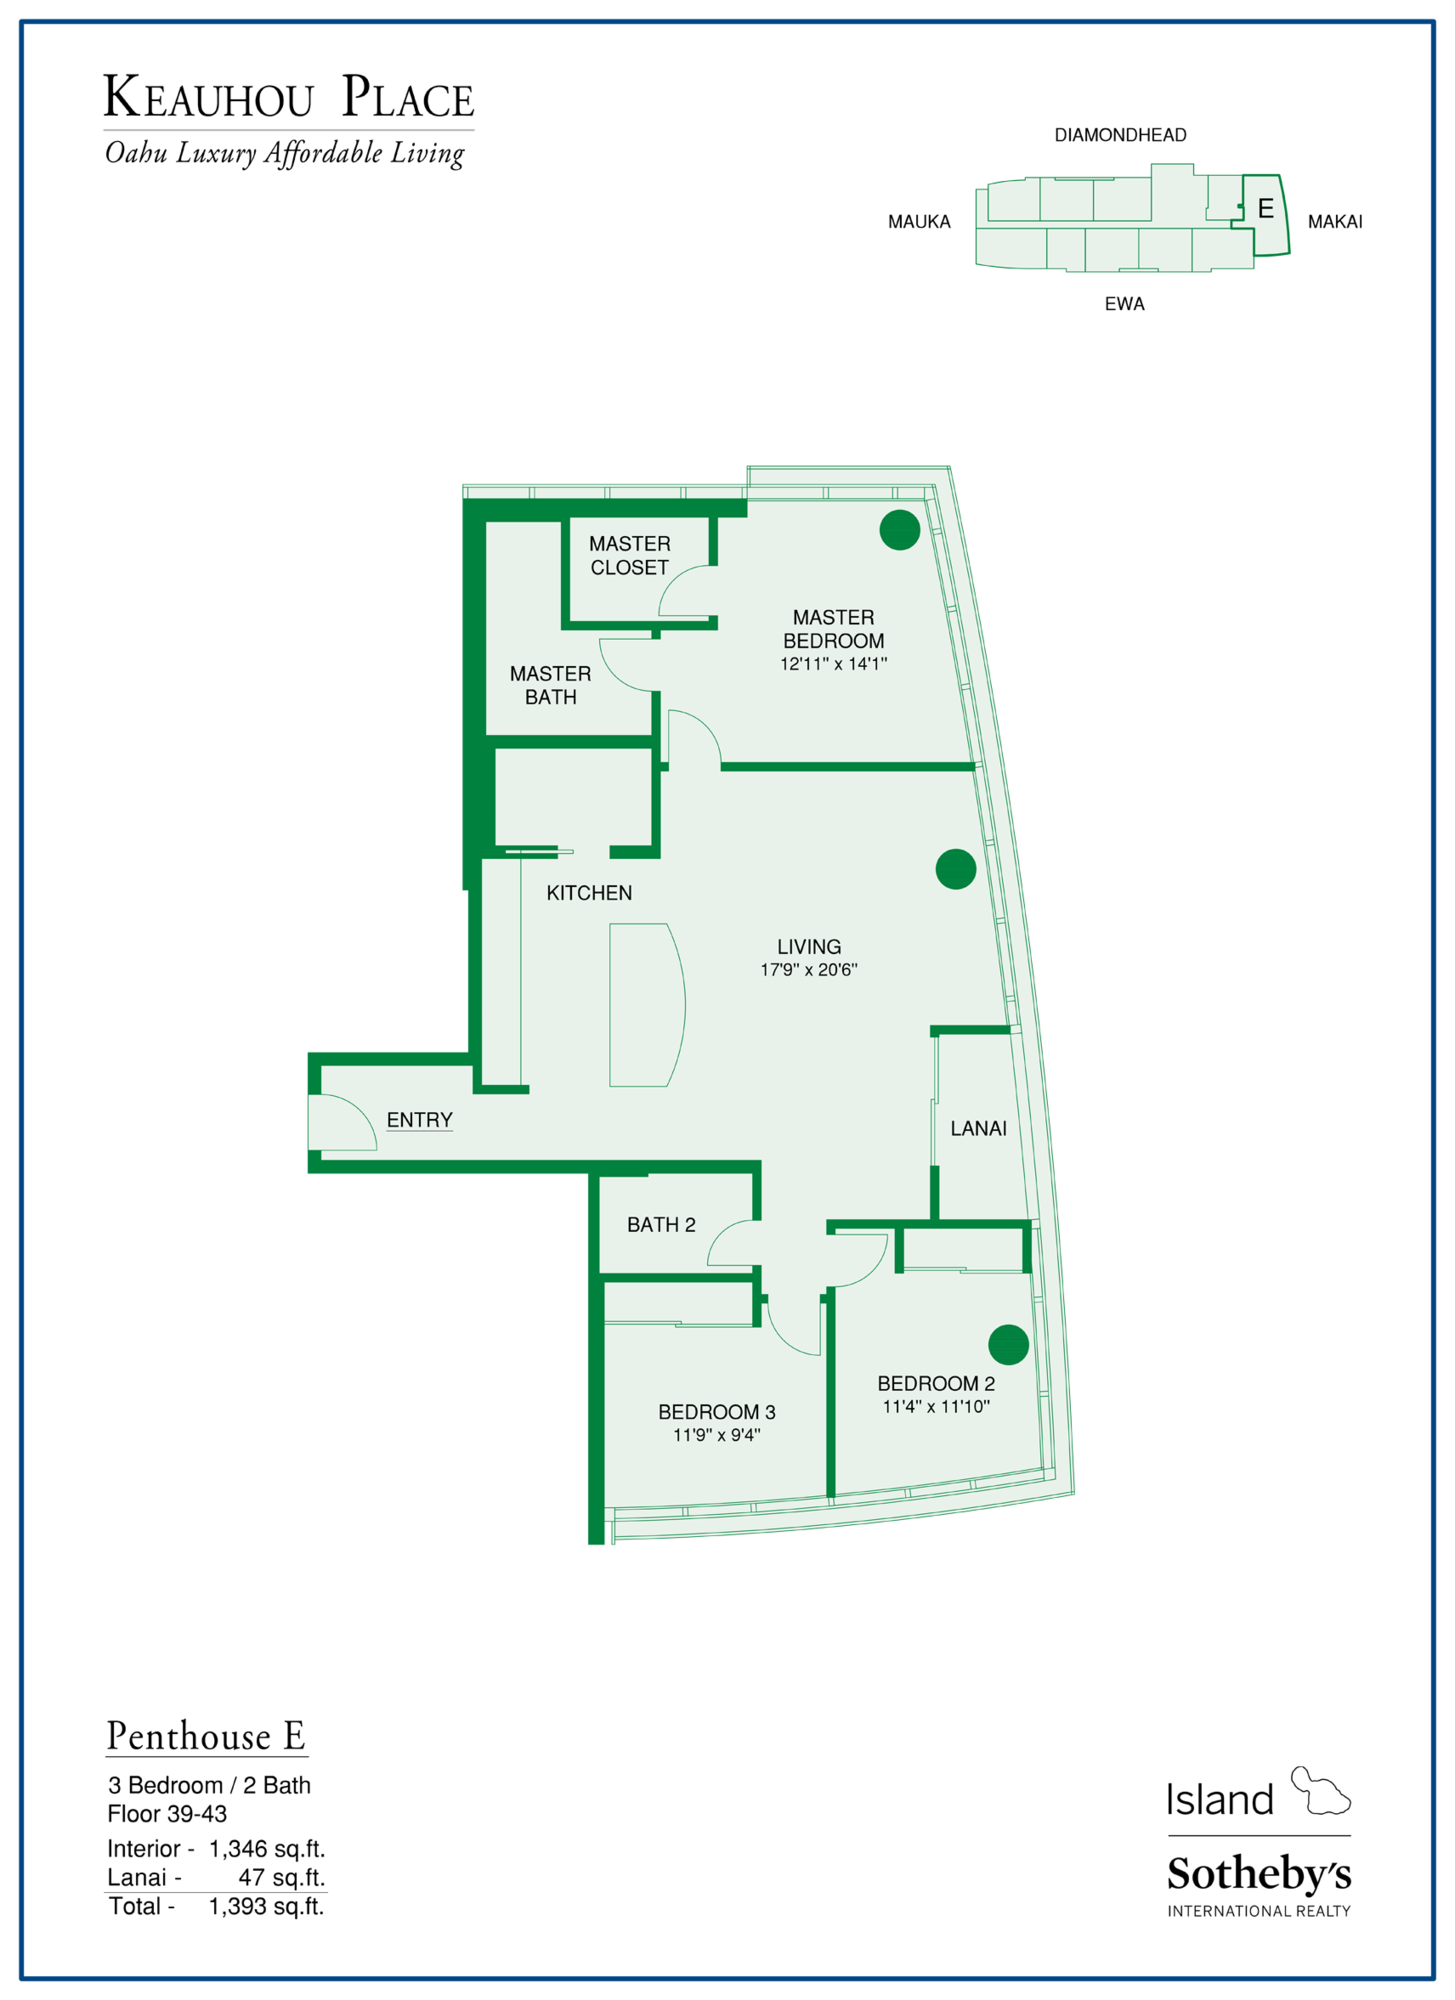 keauhou place floorplan in ala moana